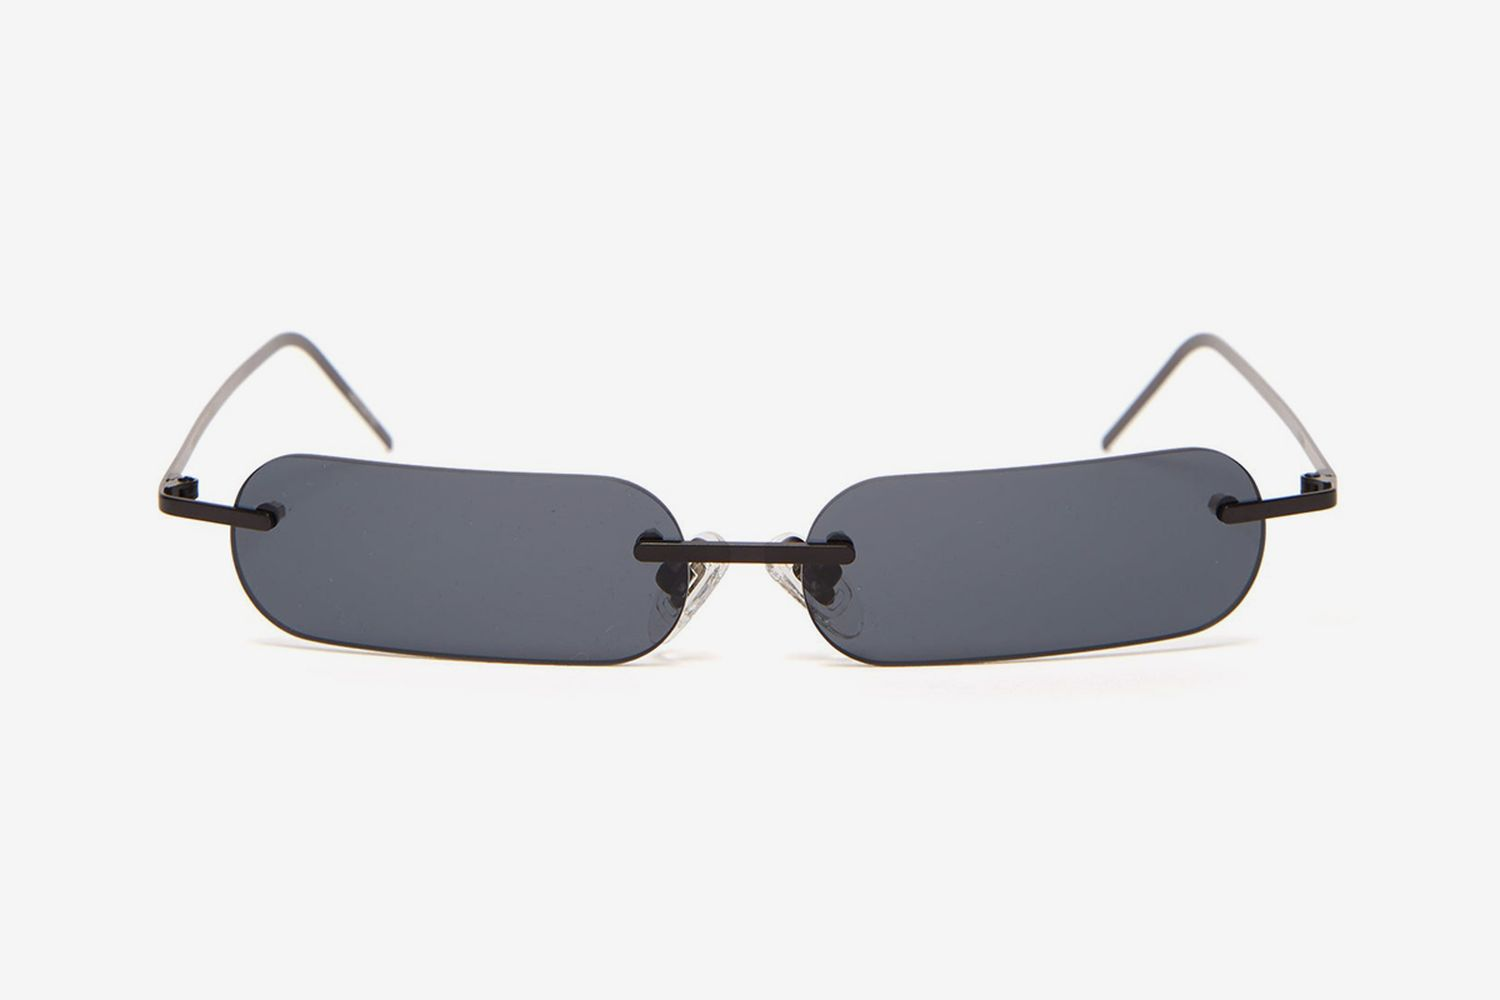 Bly X FR Rectangular Metal Sunglasses